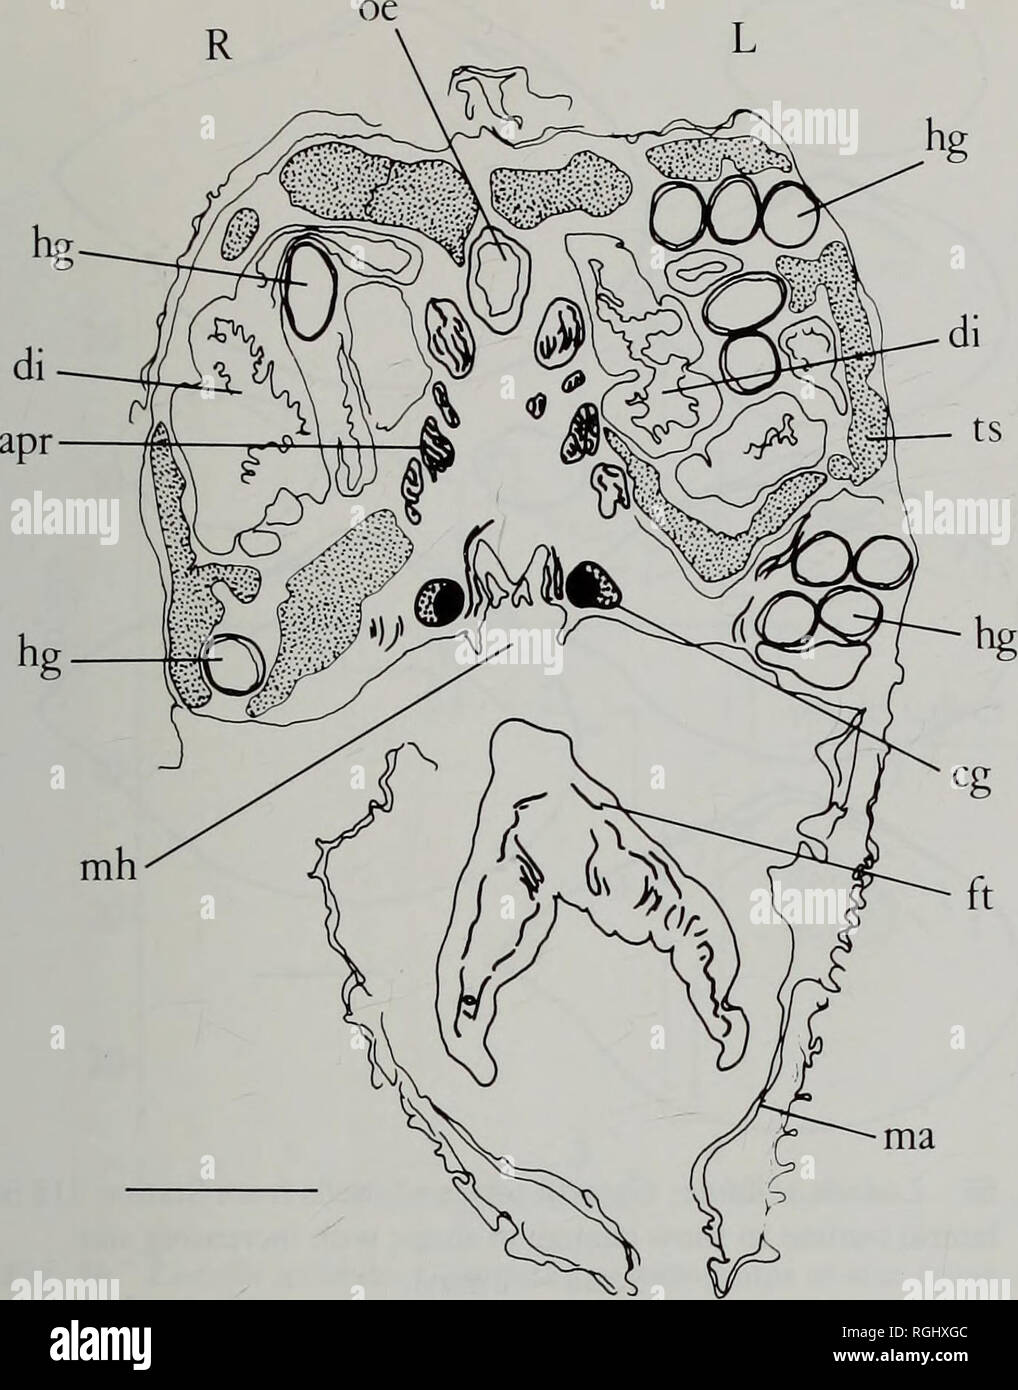 . Bulletin of the British Museum (Natural History) Zoology. DEEP SEA PROTOBRANCHIA 153. Fig. 53 Ledella solidula: Transverse ventral section of body immediately anterior to the stomach. (Scale = 0.1 mm). dorsal margin slopes sharply to form curve with anterior edge, postero-dorsal margin slopes more gradually from umbo, margin almost straight in large specimens but usually slightly convex, angled slightly at distal end of hinge plate, keel extends from umbo to tip of sharp pointed rostrum with concentric ridges making a right angle at its crest, postero- ventral margin conspicuously sinuous, v - Stock Image